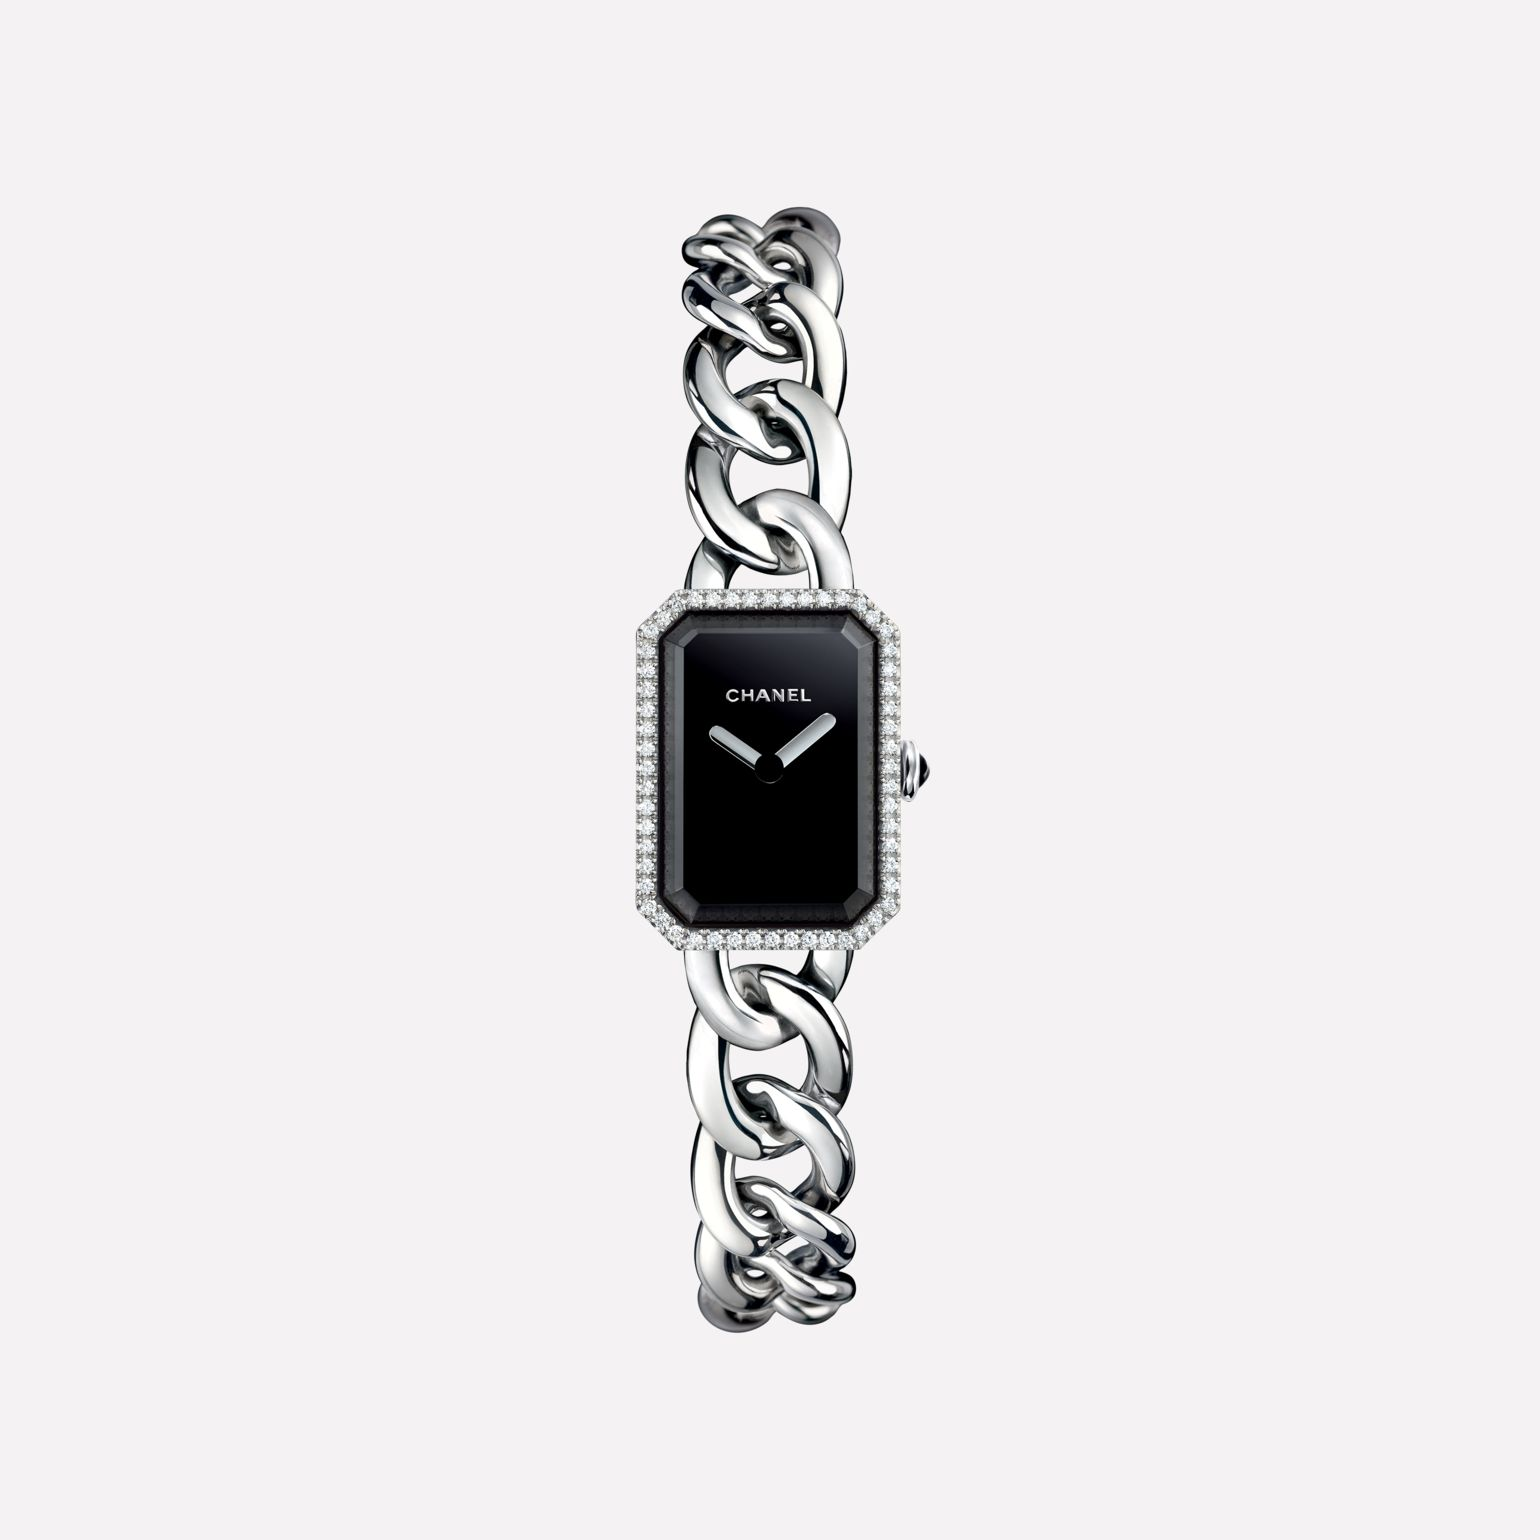 Première Chain Watch Small version, steel and diamonds, black-lacquered dial